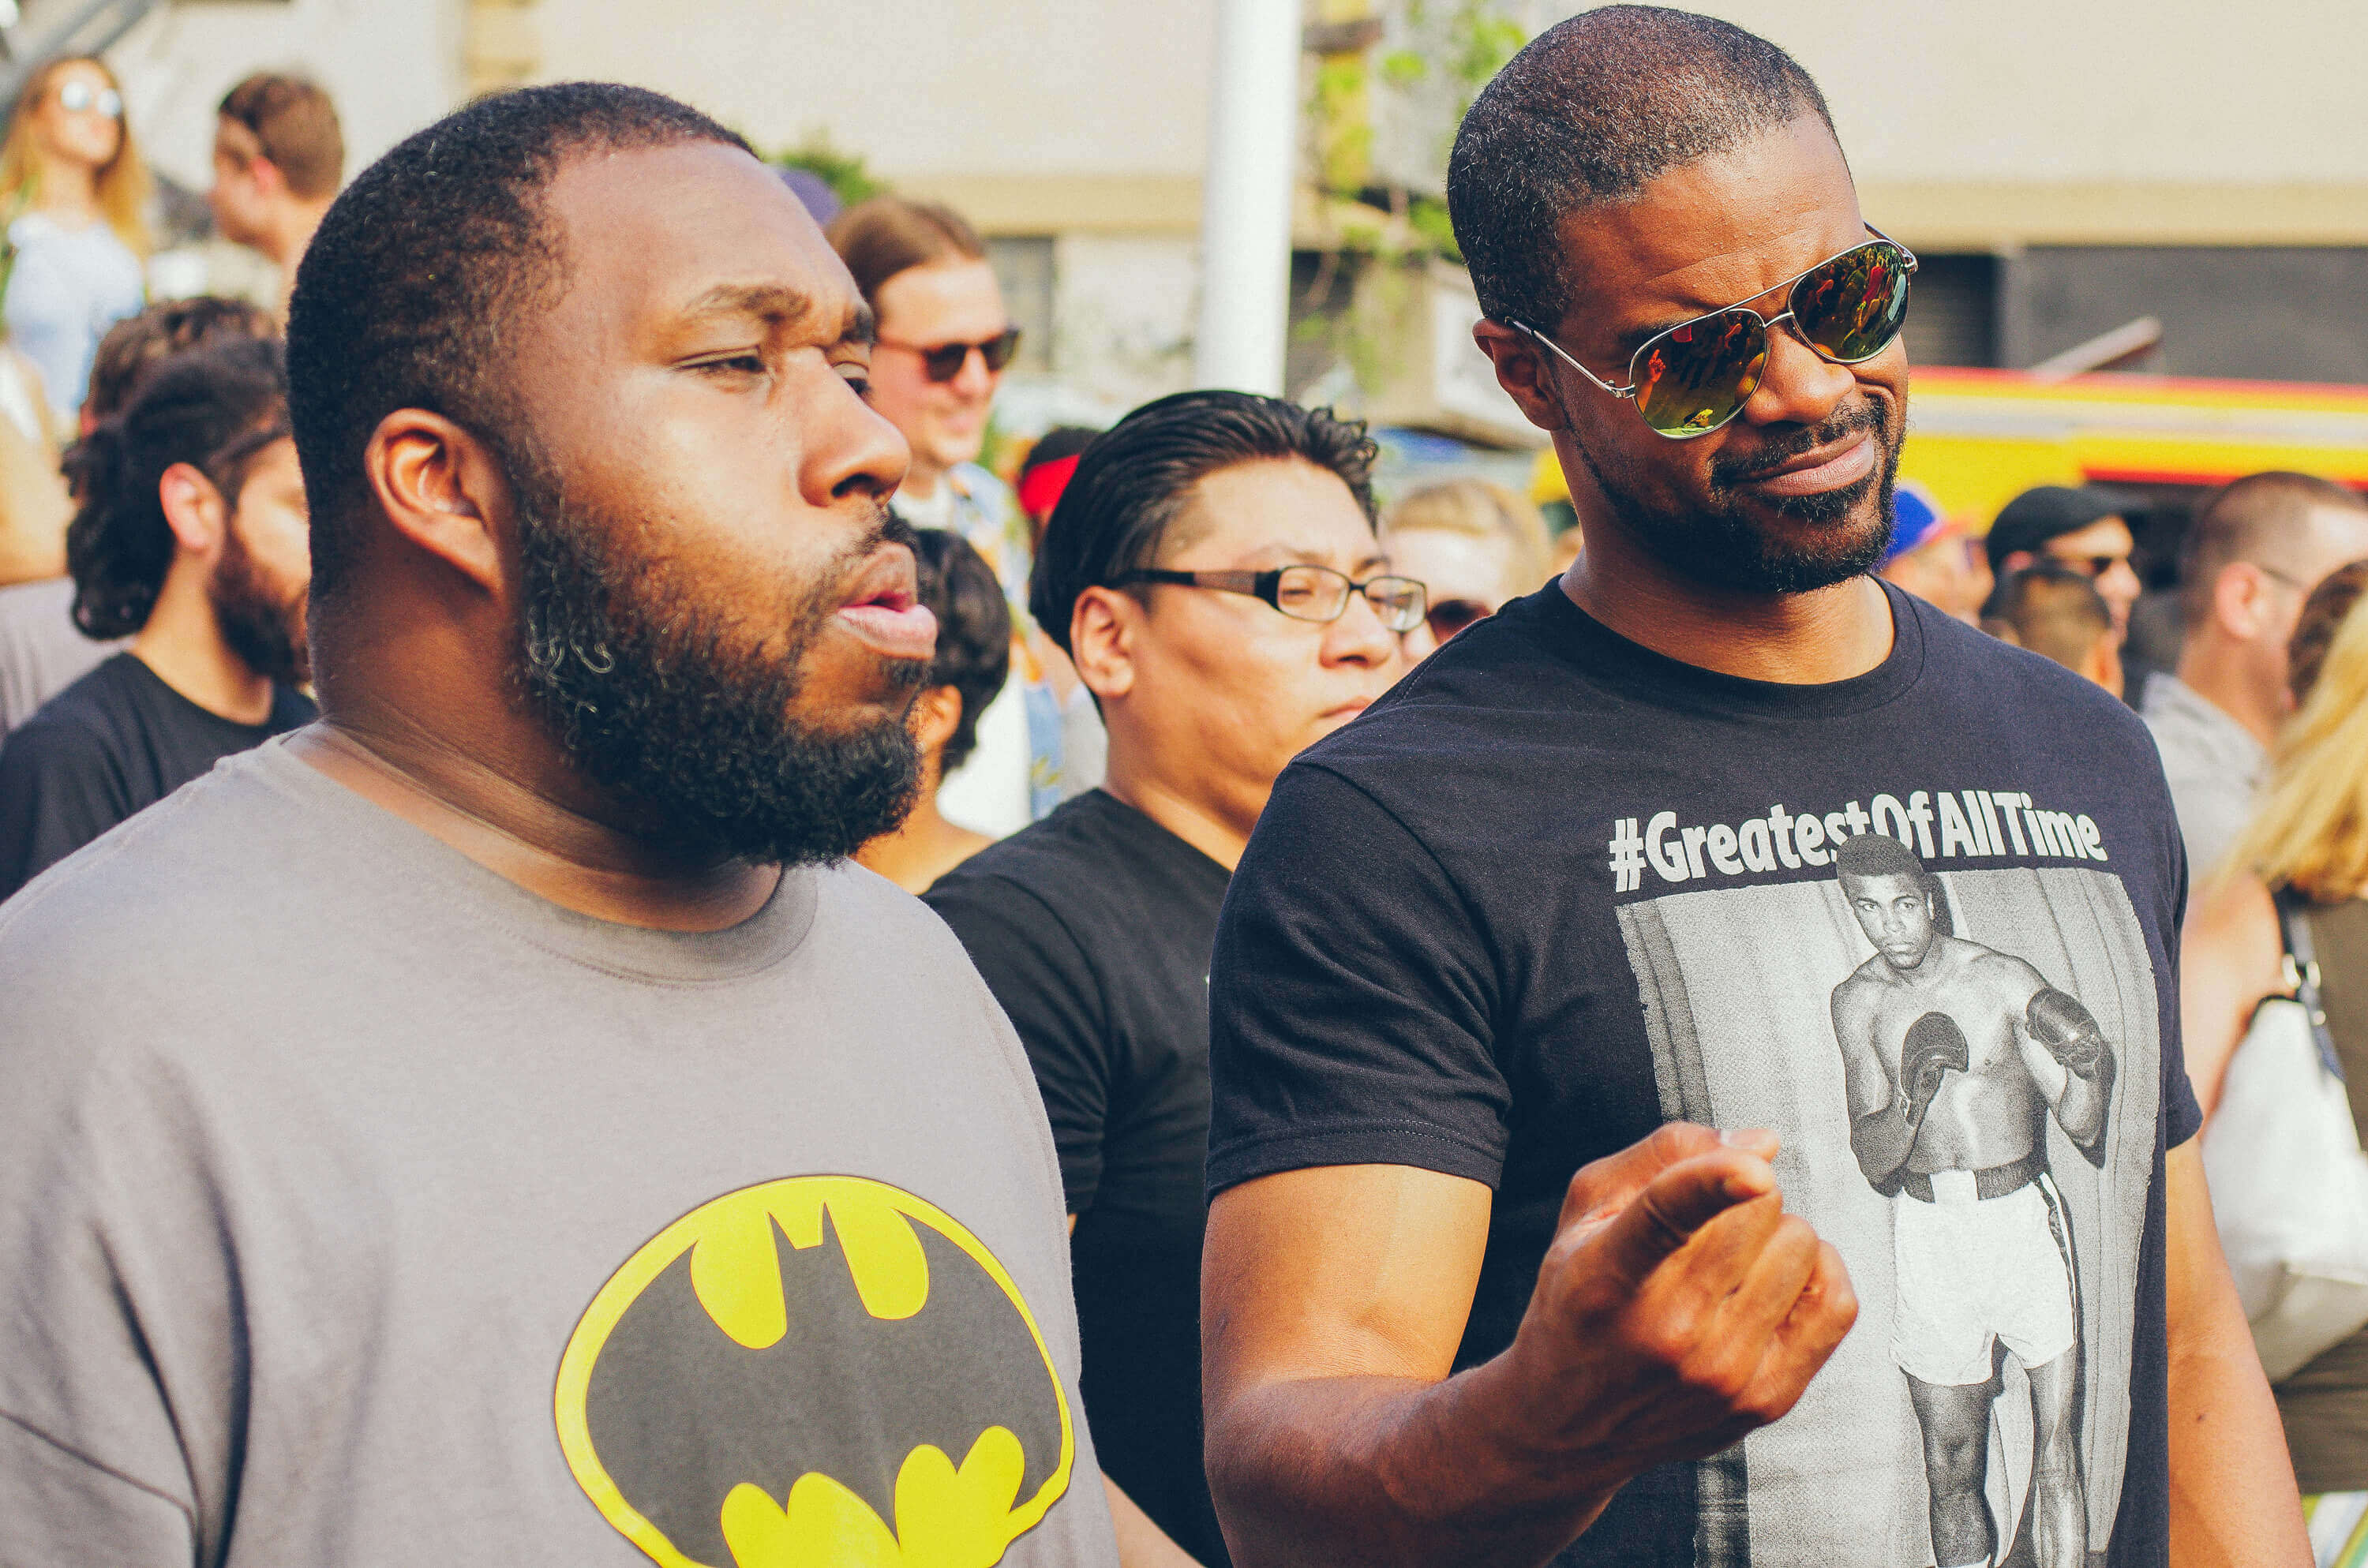 Batman and #TheGreatestOfAllTime on the Bushwick Collective Block Party 2016